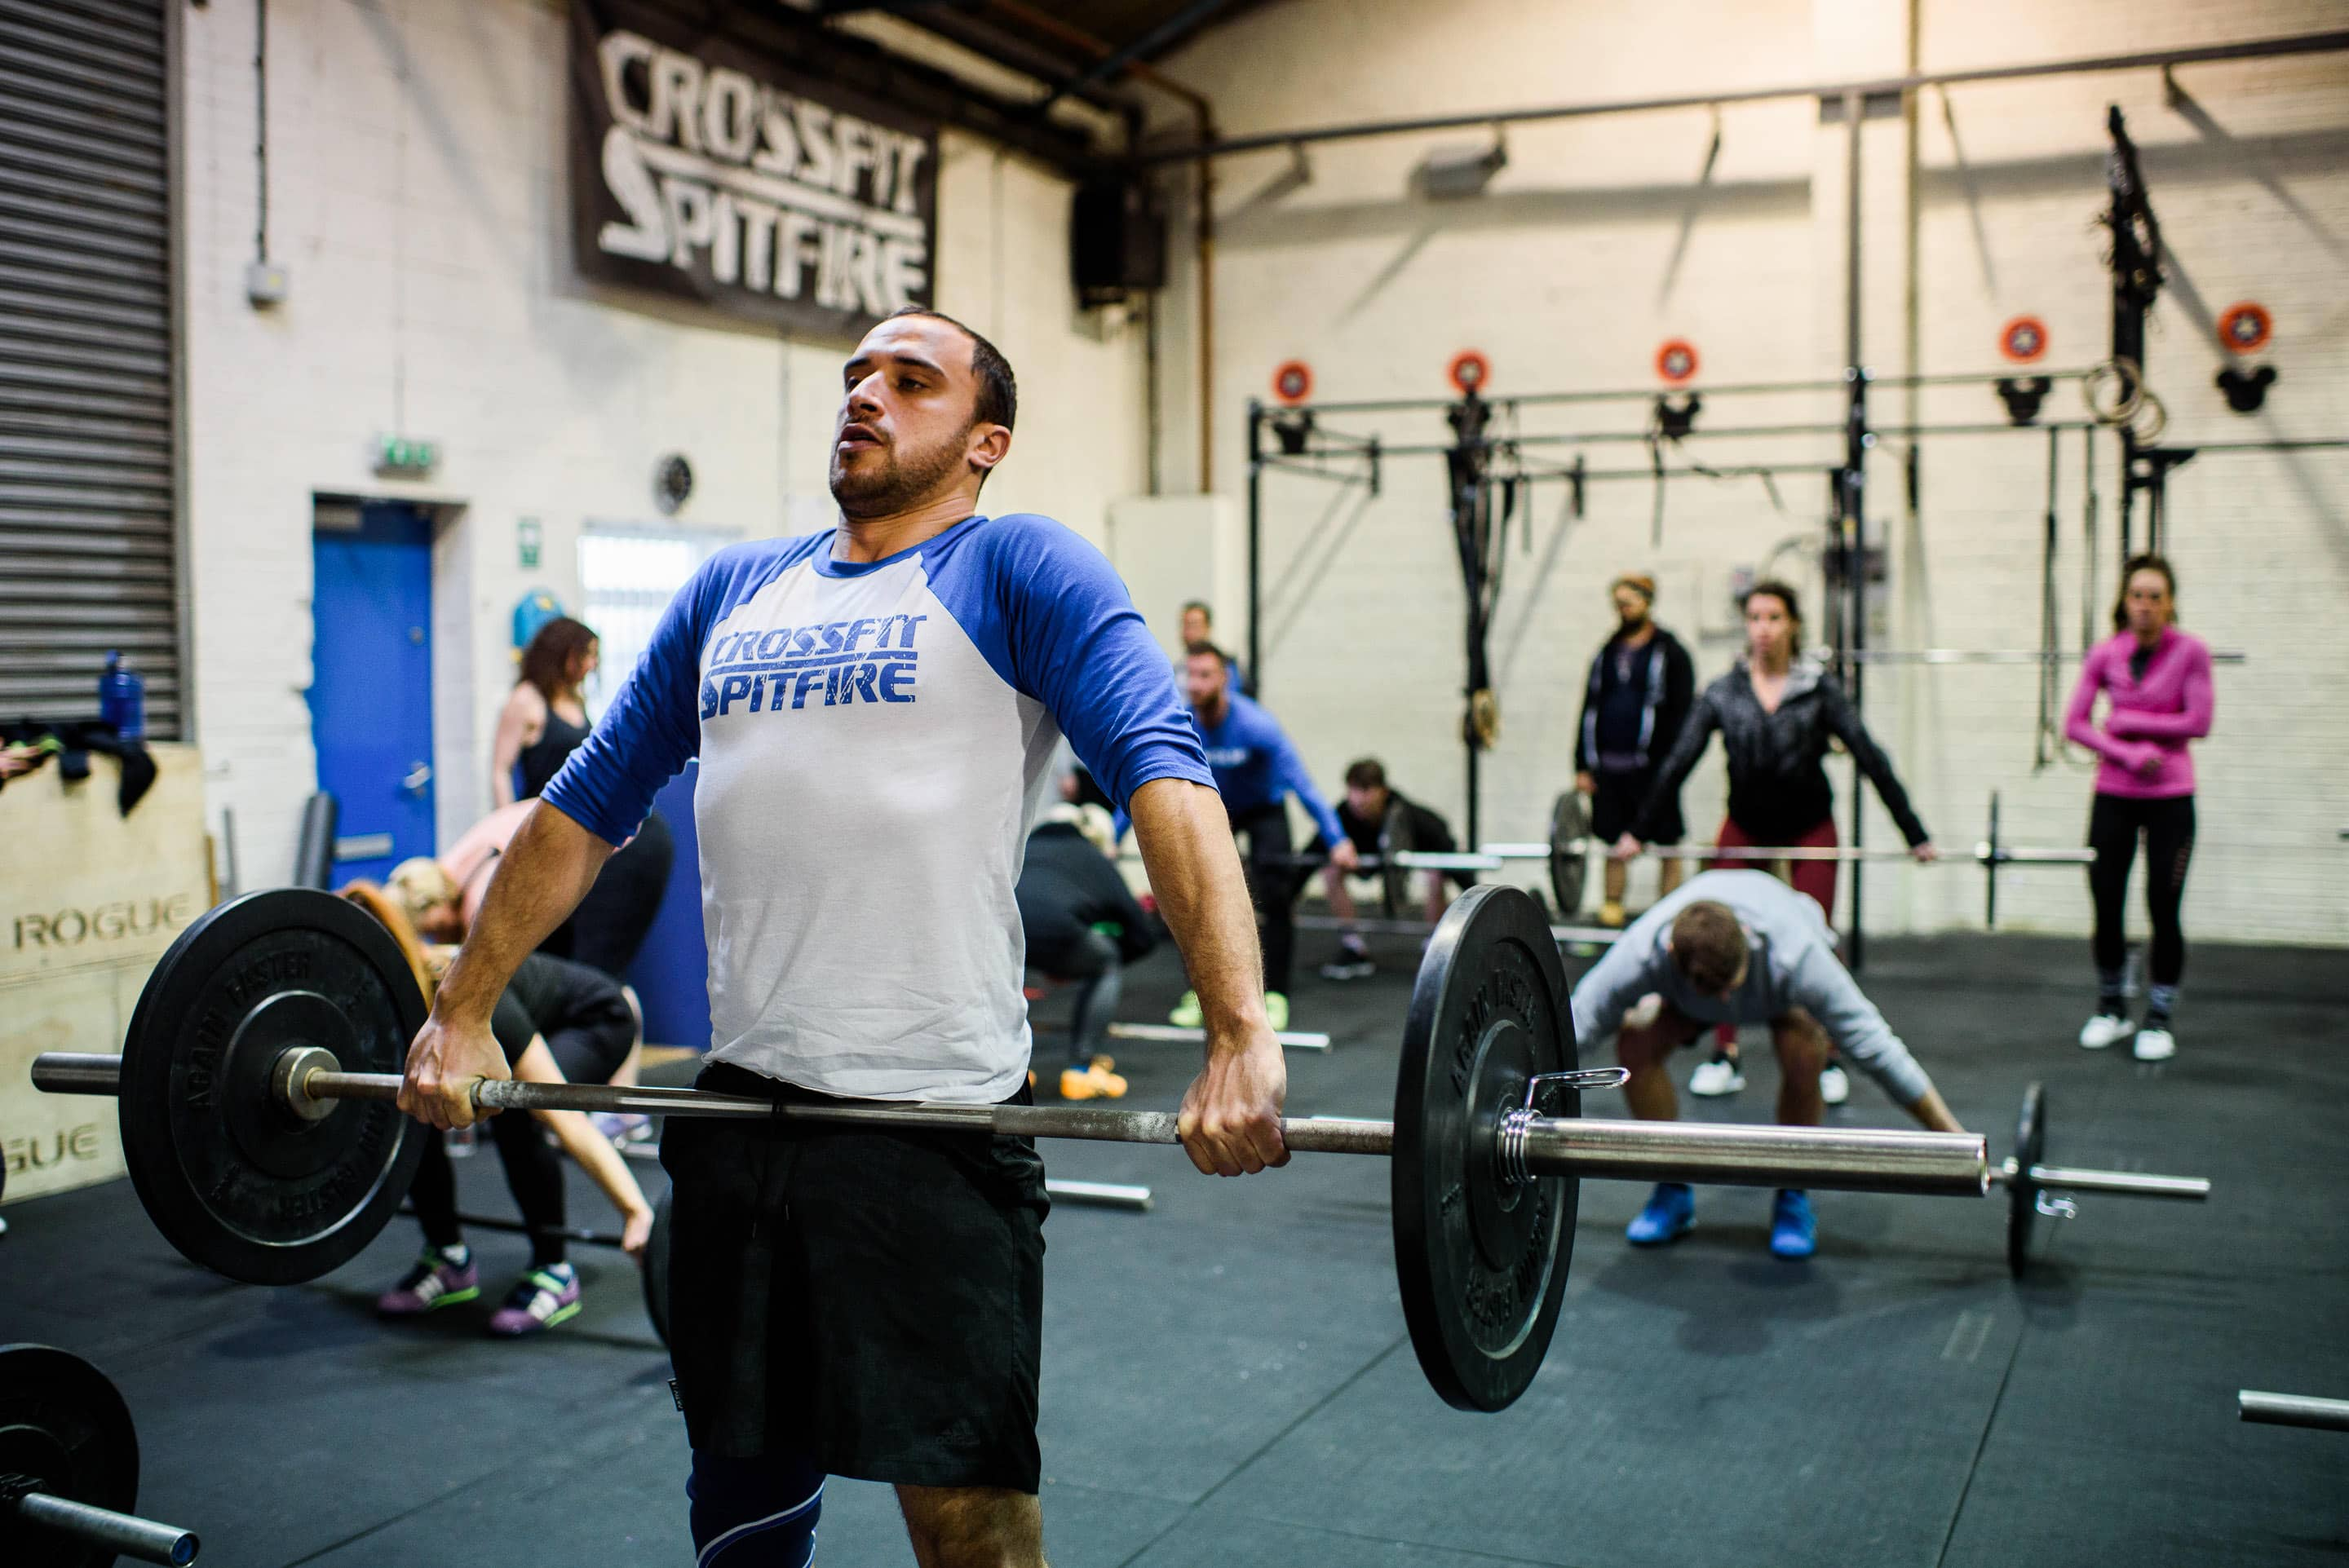 CrossFit Spitfire - Weightlifting Seminar 13